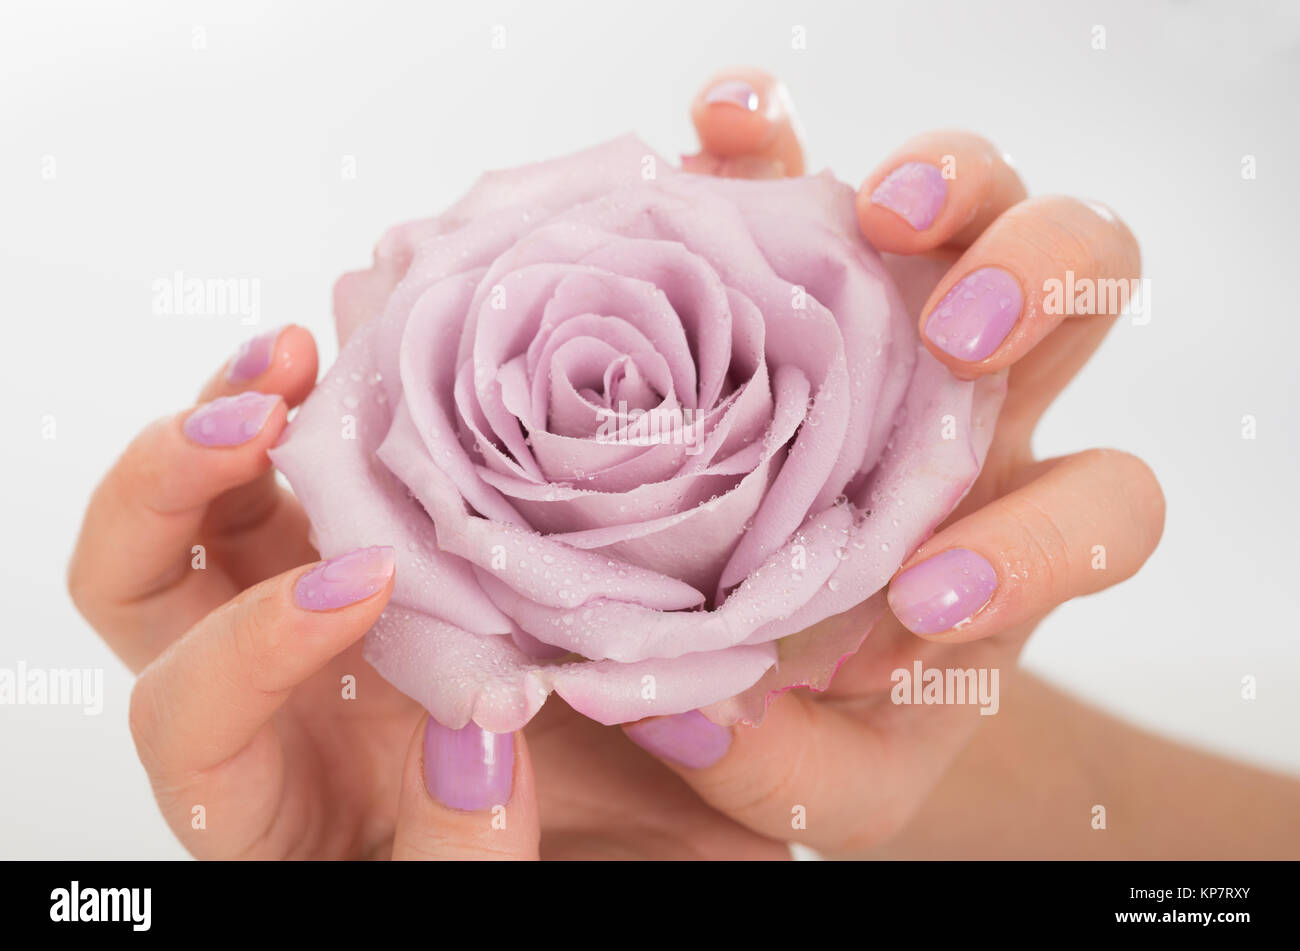 Hands with pastel lilac manicure holding a pale rose flower on neutral background - Stock Image